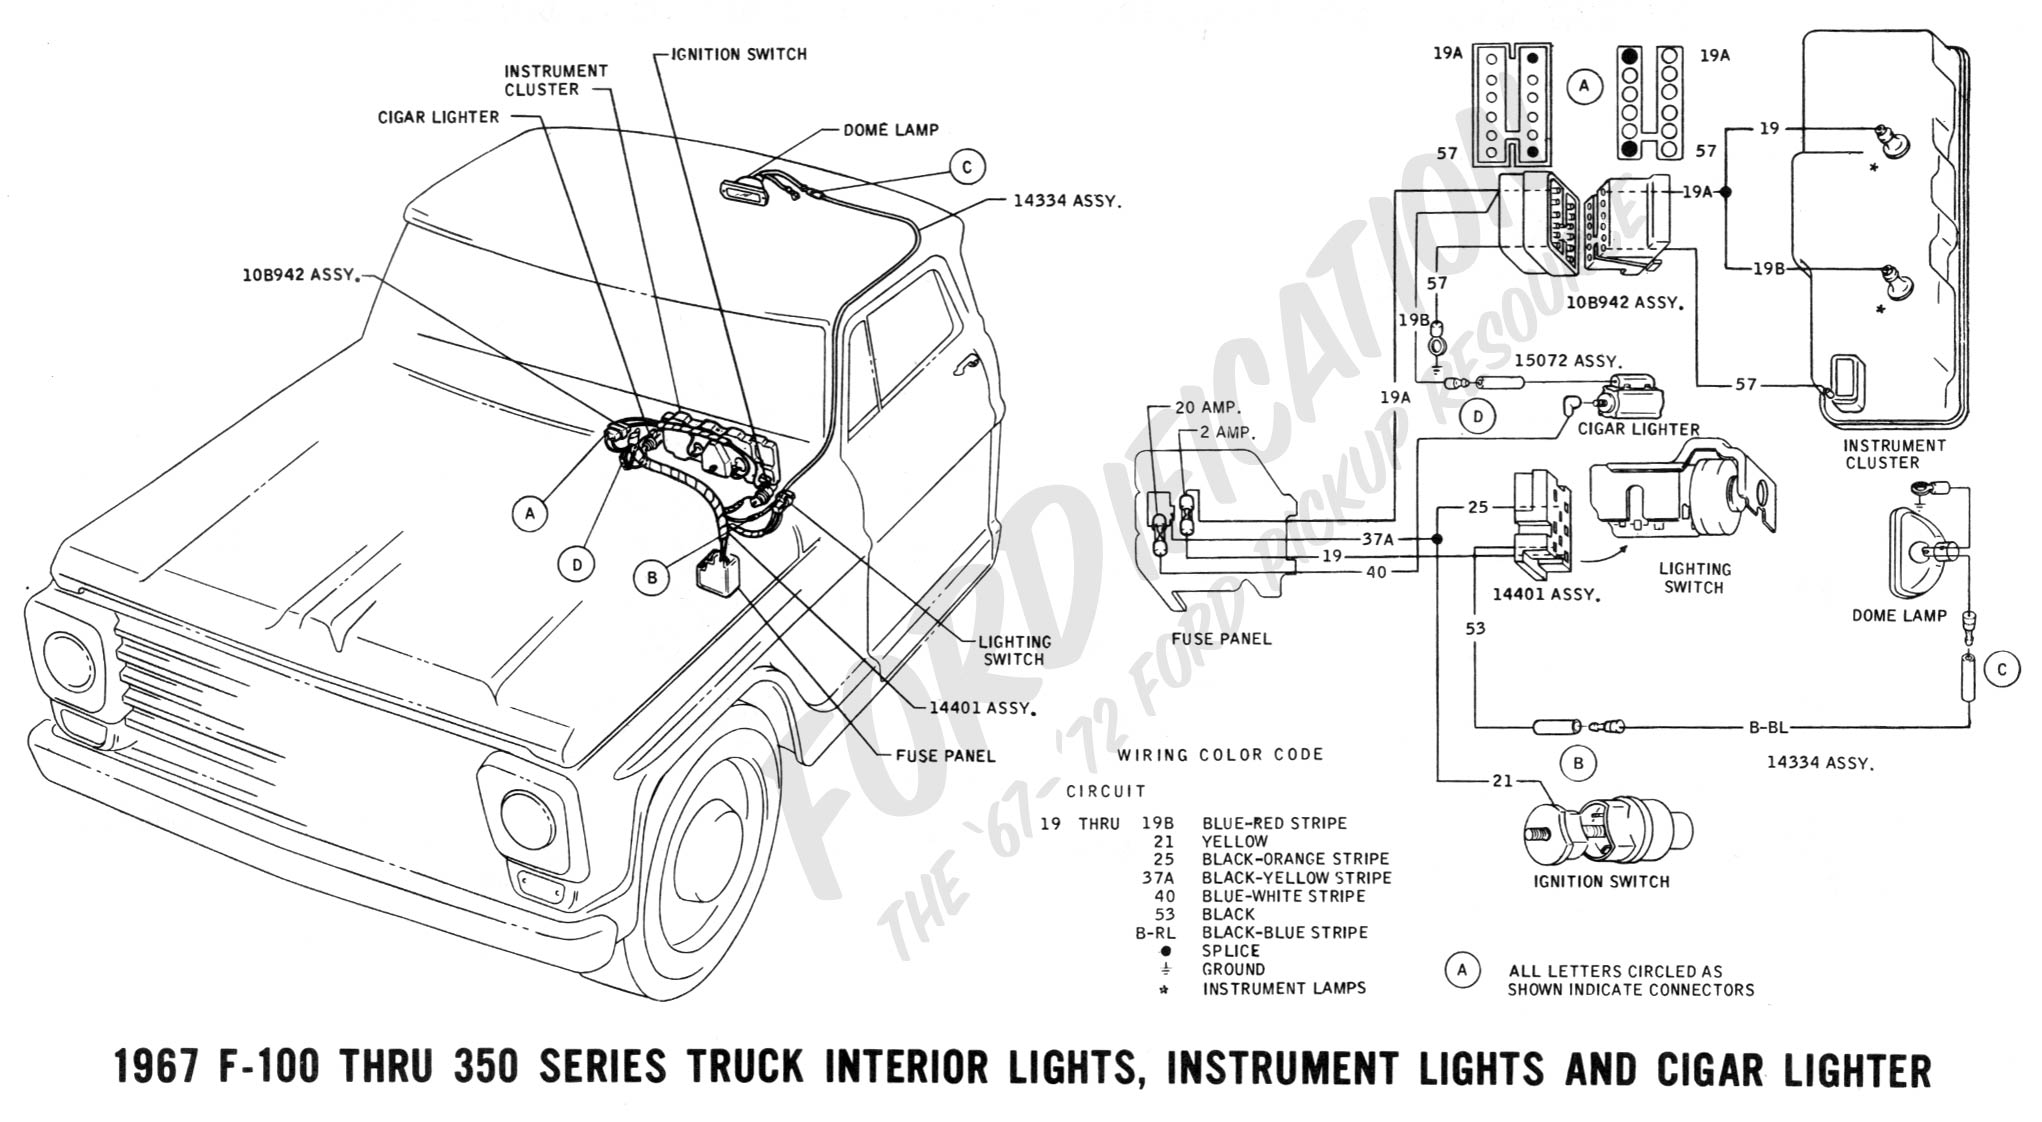 1972 ford f100 ignition switch wiring diagram antique reel truck technical drawings and schematics section h